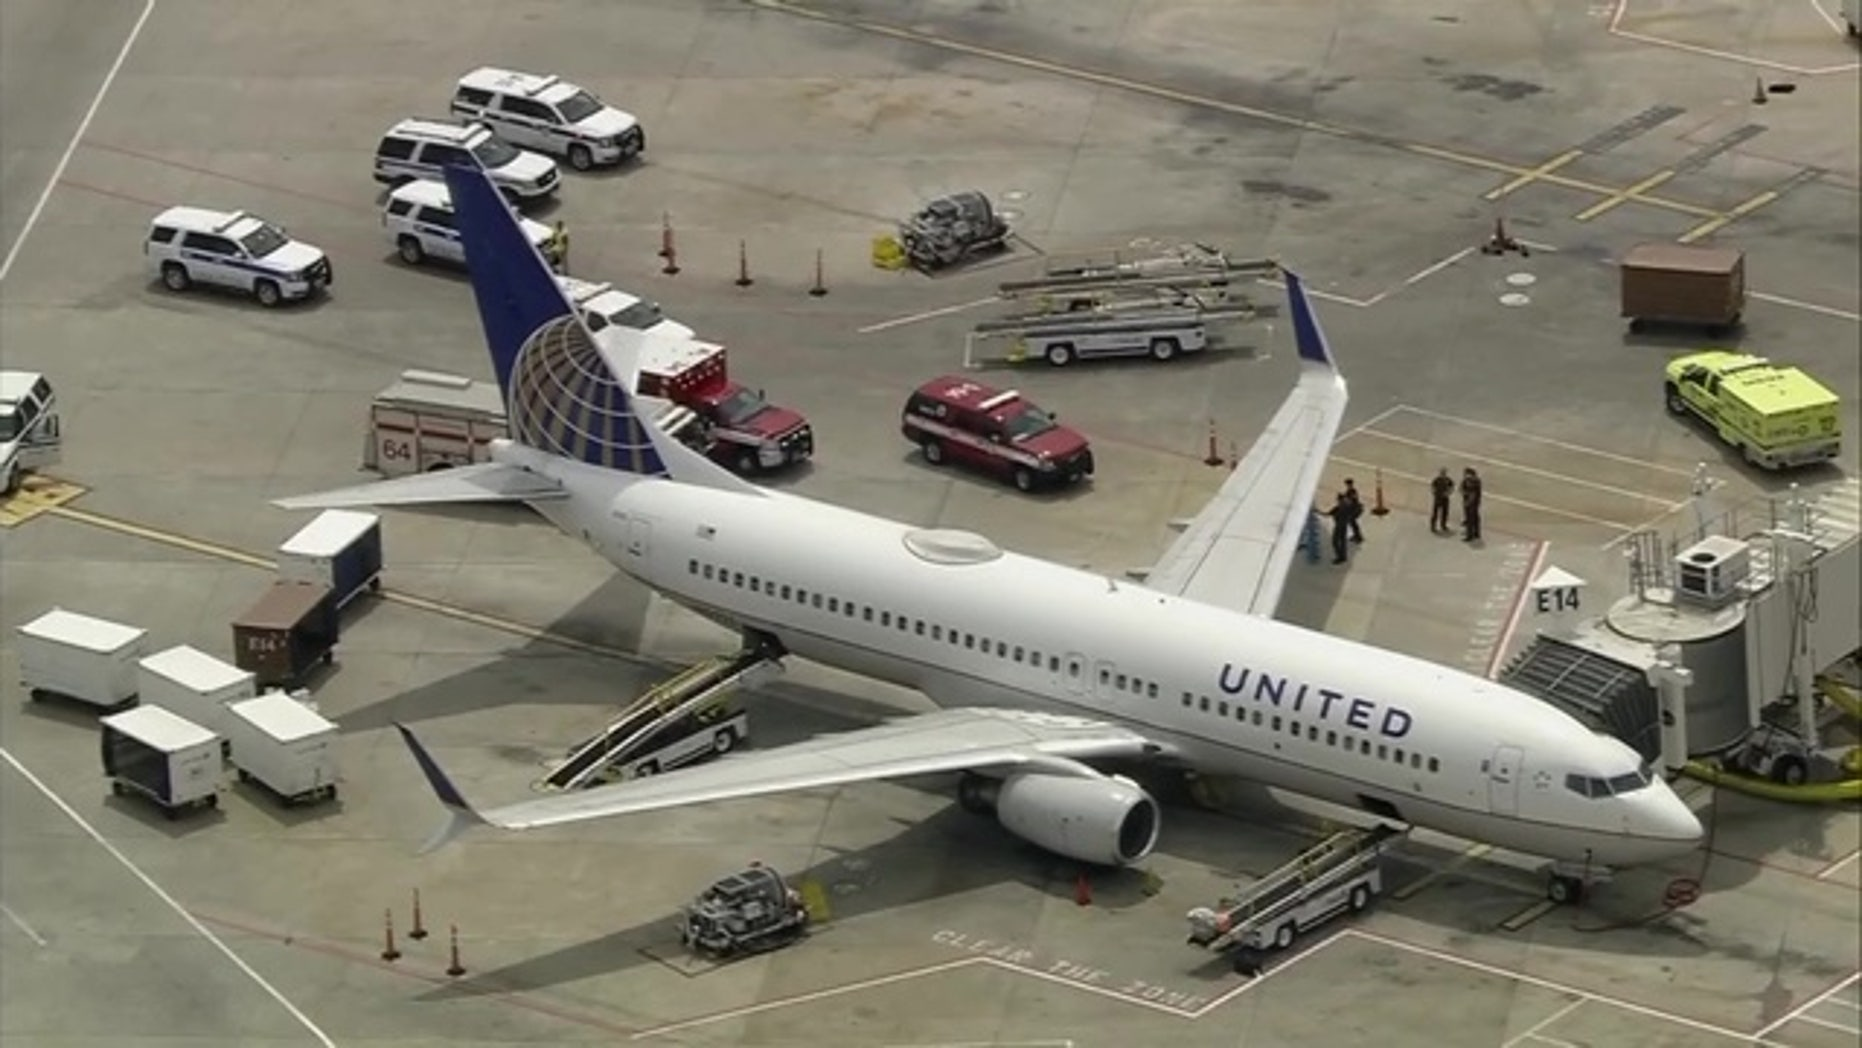 United passengers were injured after hitting severe turbulence over Mexico.